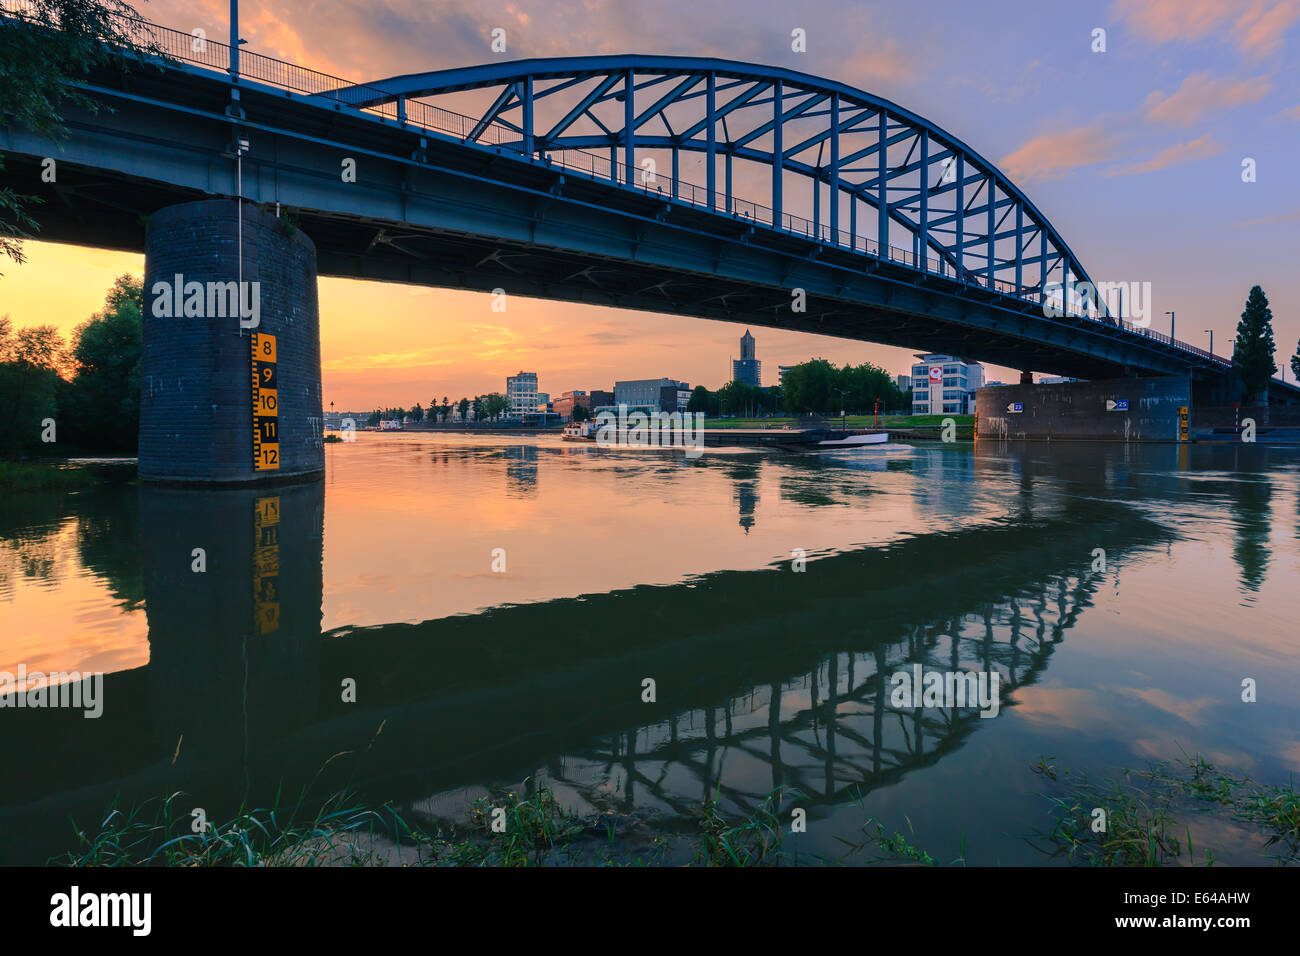 John Frost Bridge (John Frostbrug in Dutch) is the road bridge over the Lower Rhine at Arnhem, in the Netherlands. - Stock Image